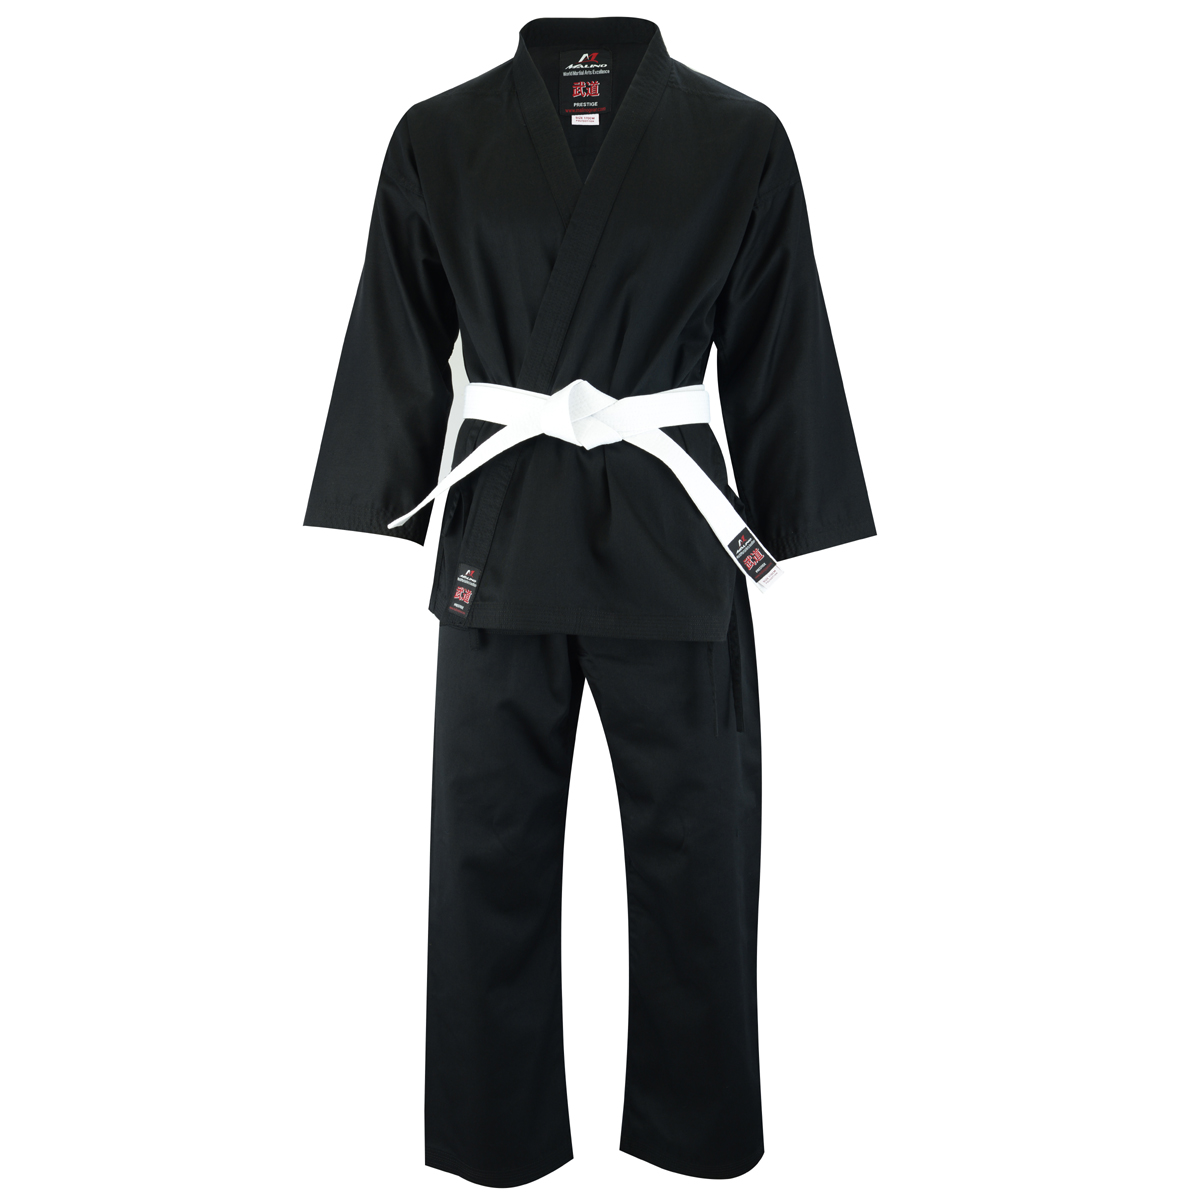 Malino Kids Student Karate Suit Black - 7oz